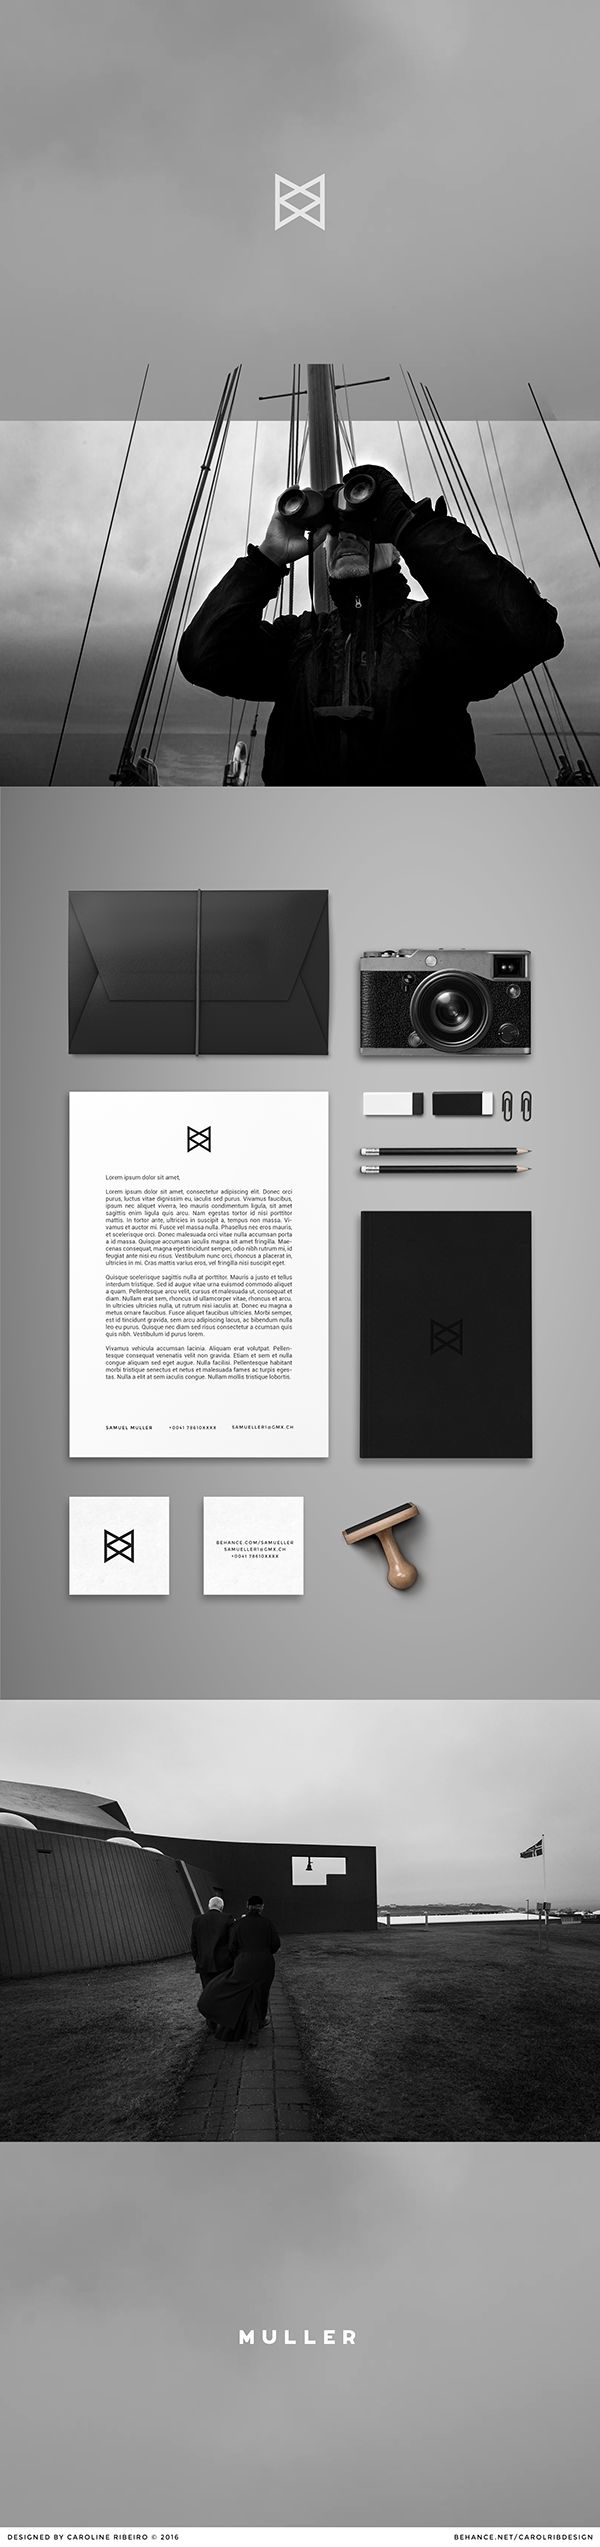 Logo and Visual Identity created for Samuel Muller, photographer based in Solothurn, Switzerland.   The geometrical logo comes from the view of the eye. The object transports light trough our eye and reflects it upside down on the other side. Those simple lines represents our view system.